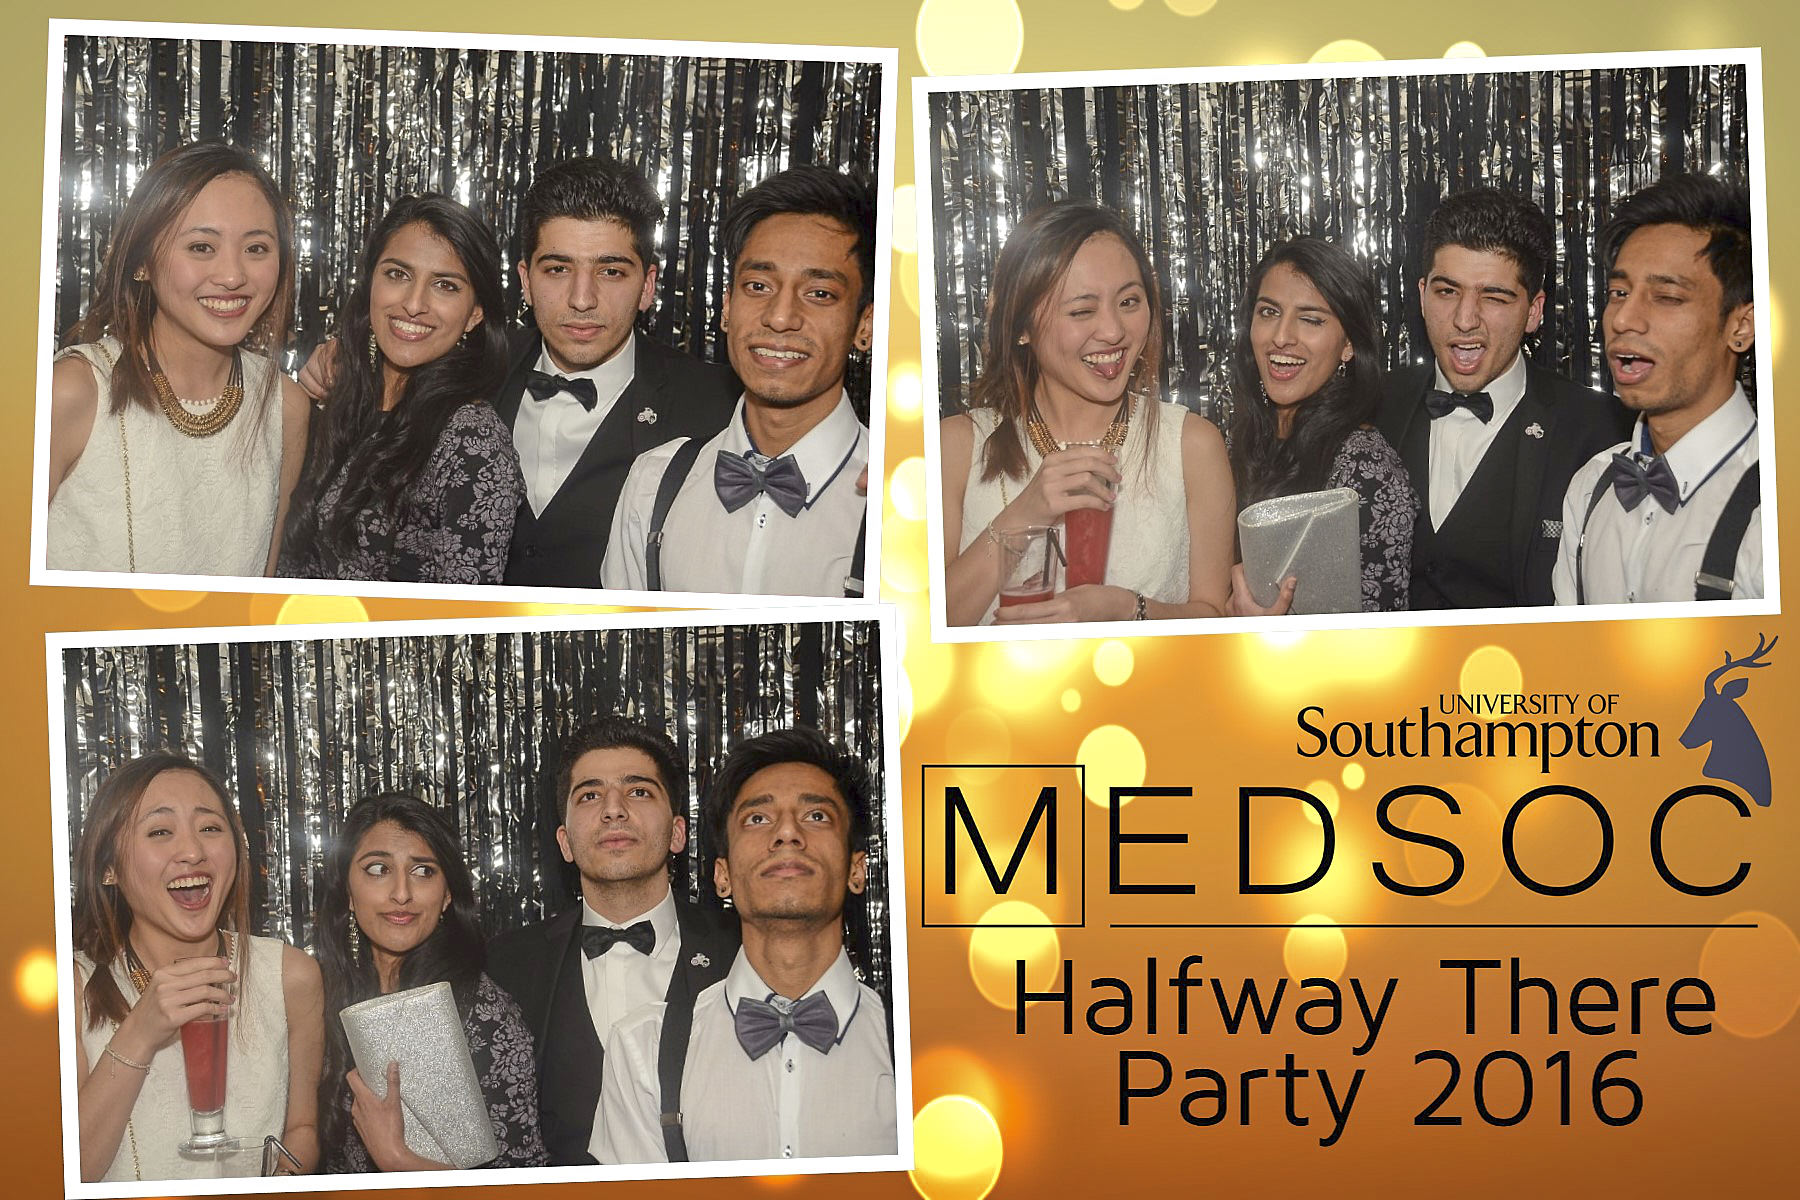 MedSoc Halfway There Party 2016 DS223757.jpg